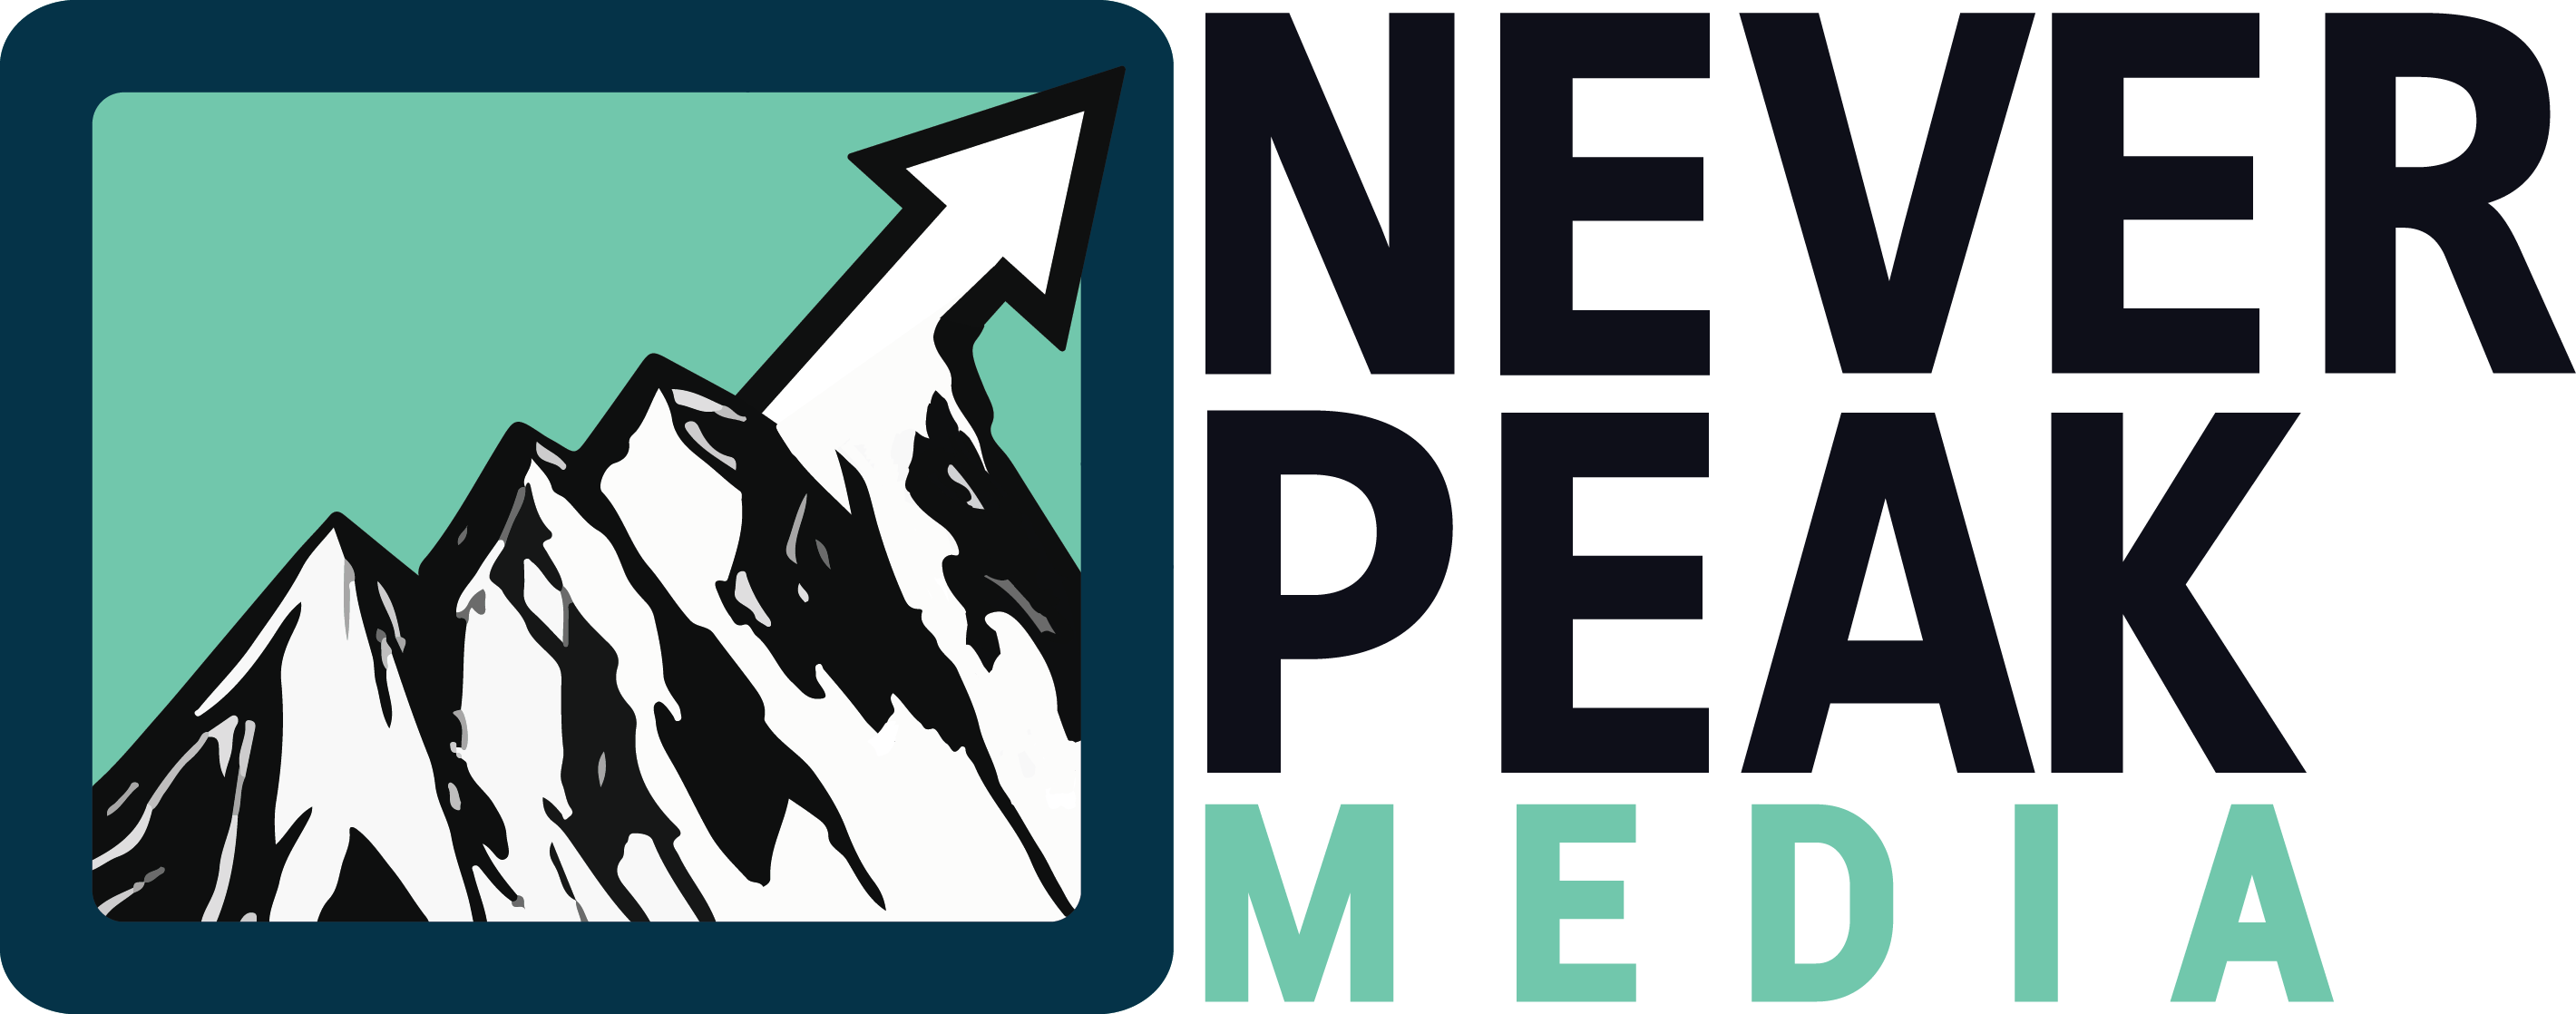 FIXED Never Peak Media FINAL LOGO